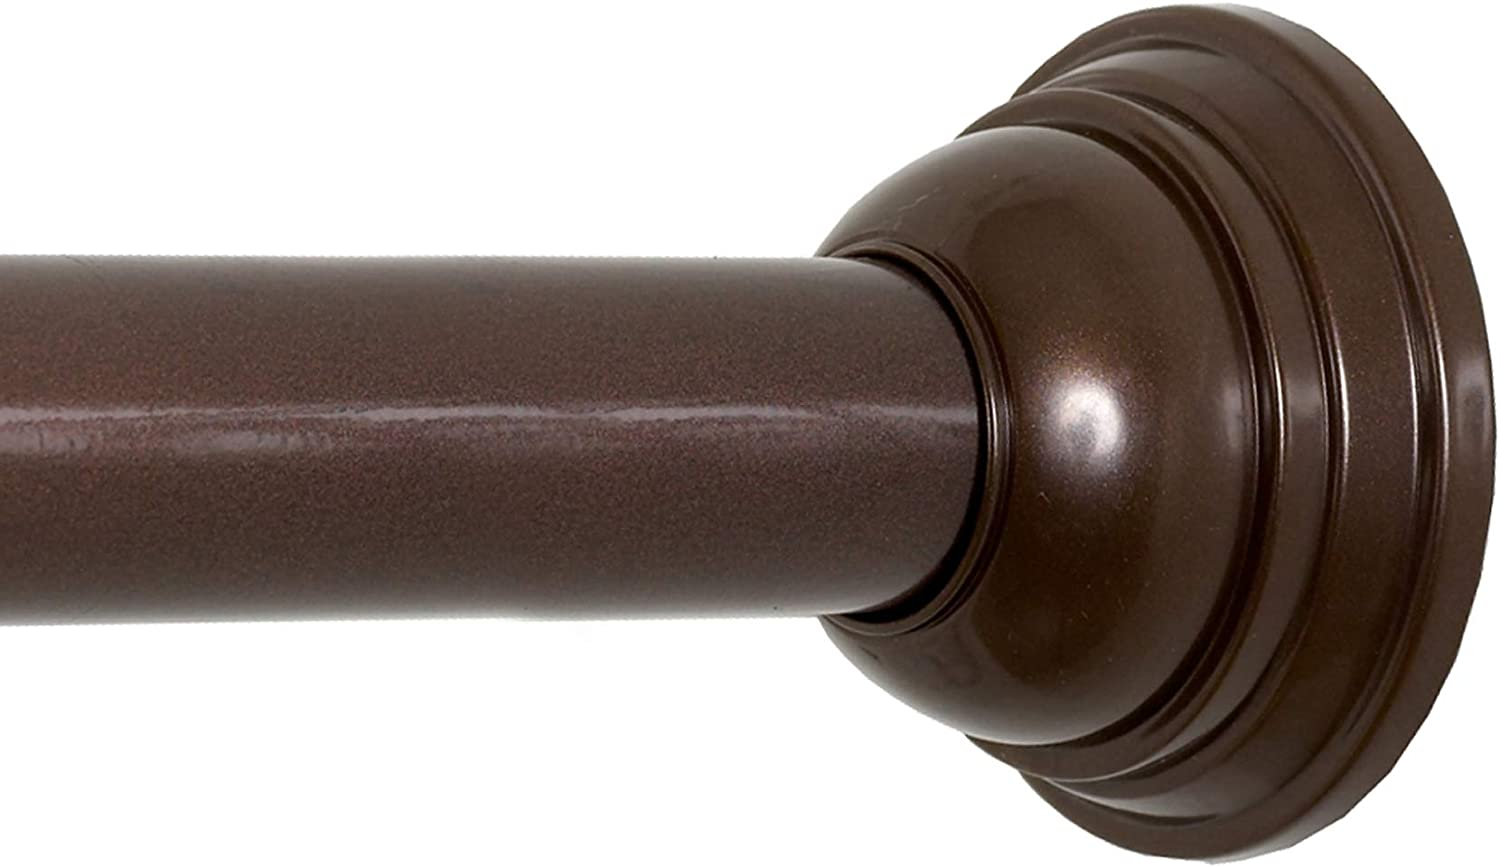 Zenna Home Decorative Tension Shower Curtain Rod, 44 to 72 Inches, Oil Rubbed Bronze